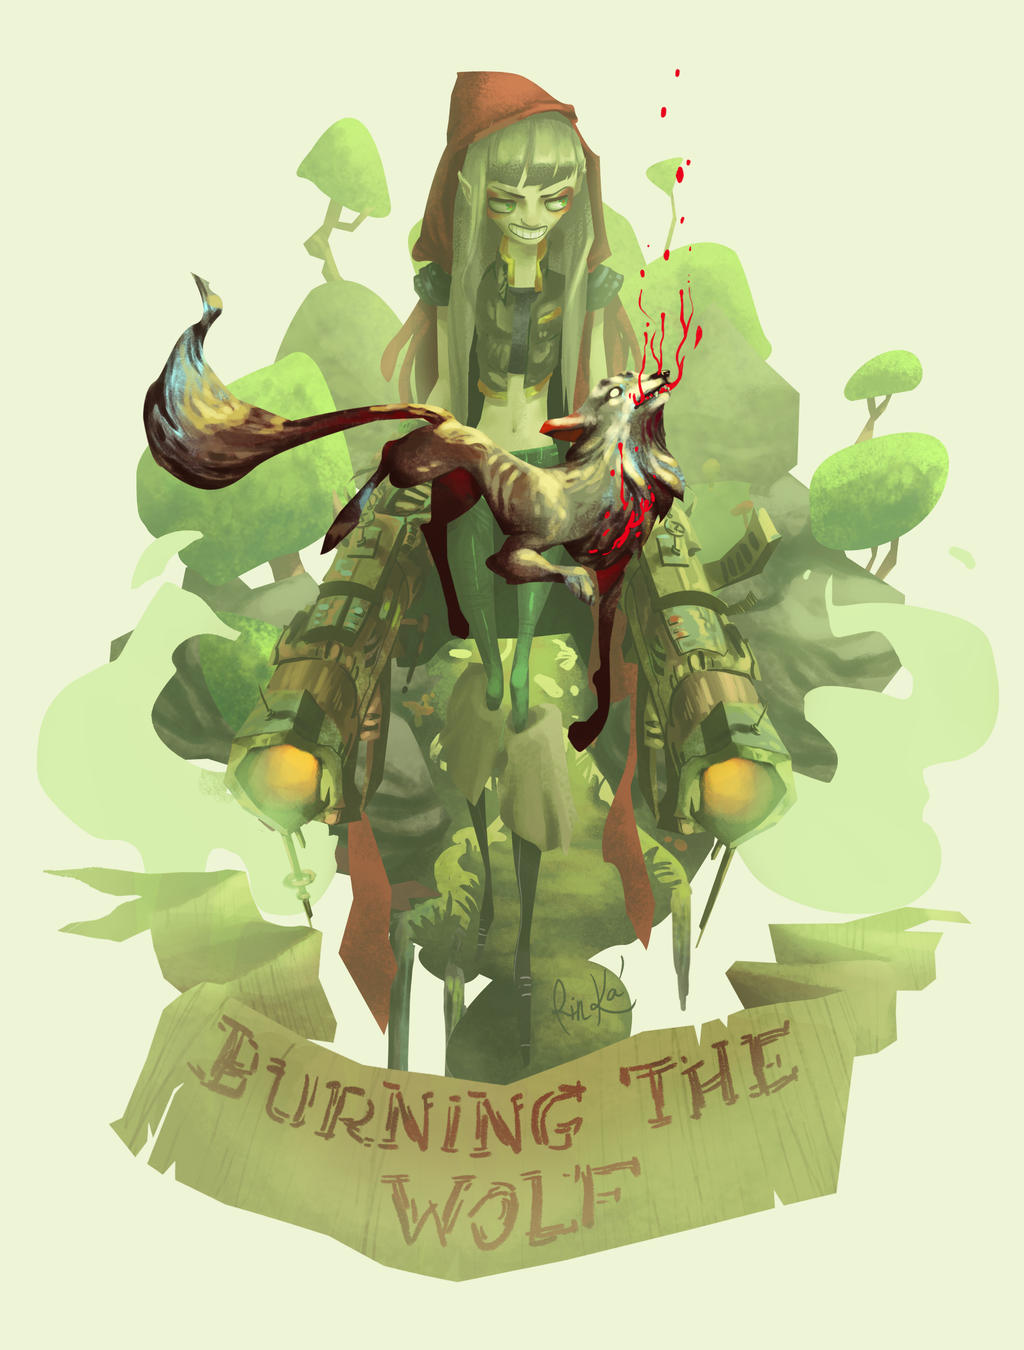 Burning the Wolf by RinKaDrawings